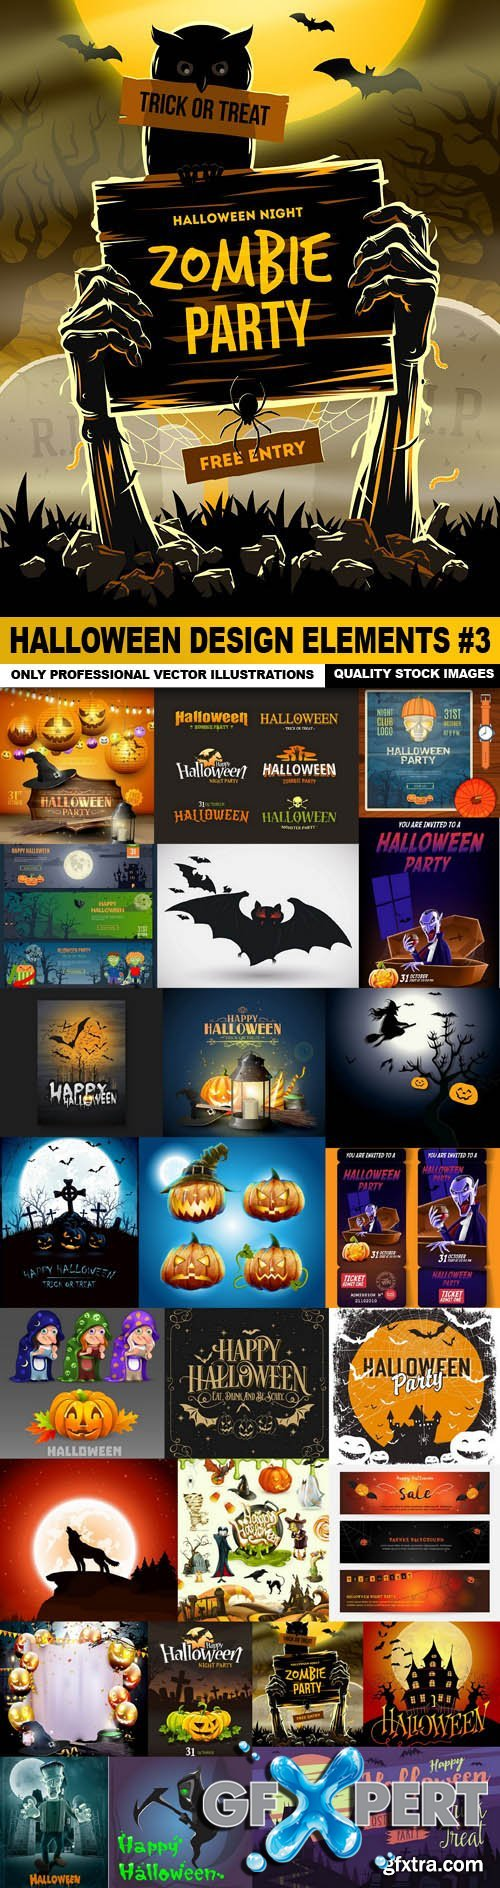 Halloween Design Elements #3 - 25 Vector